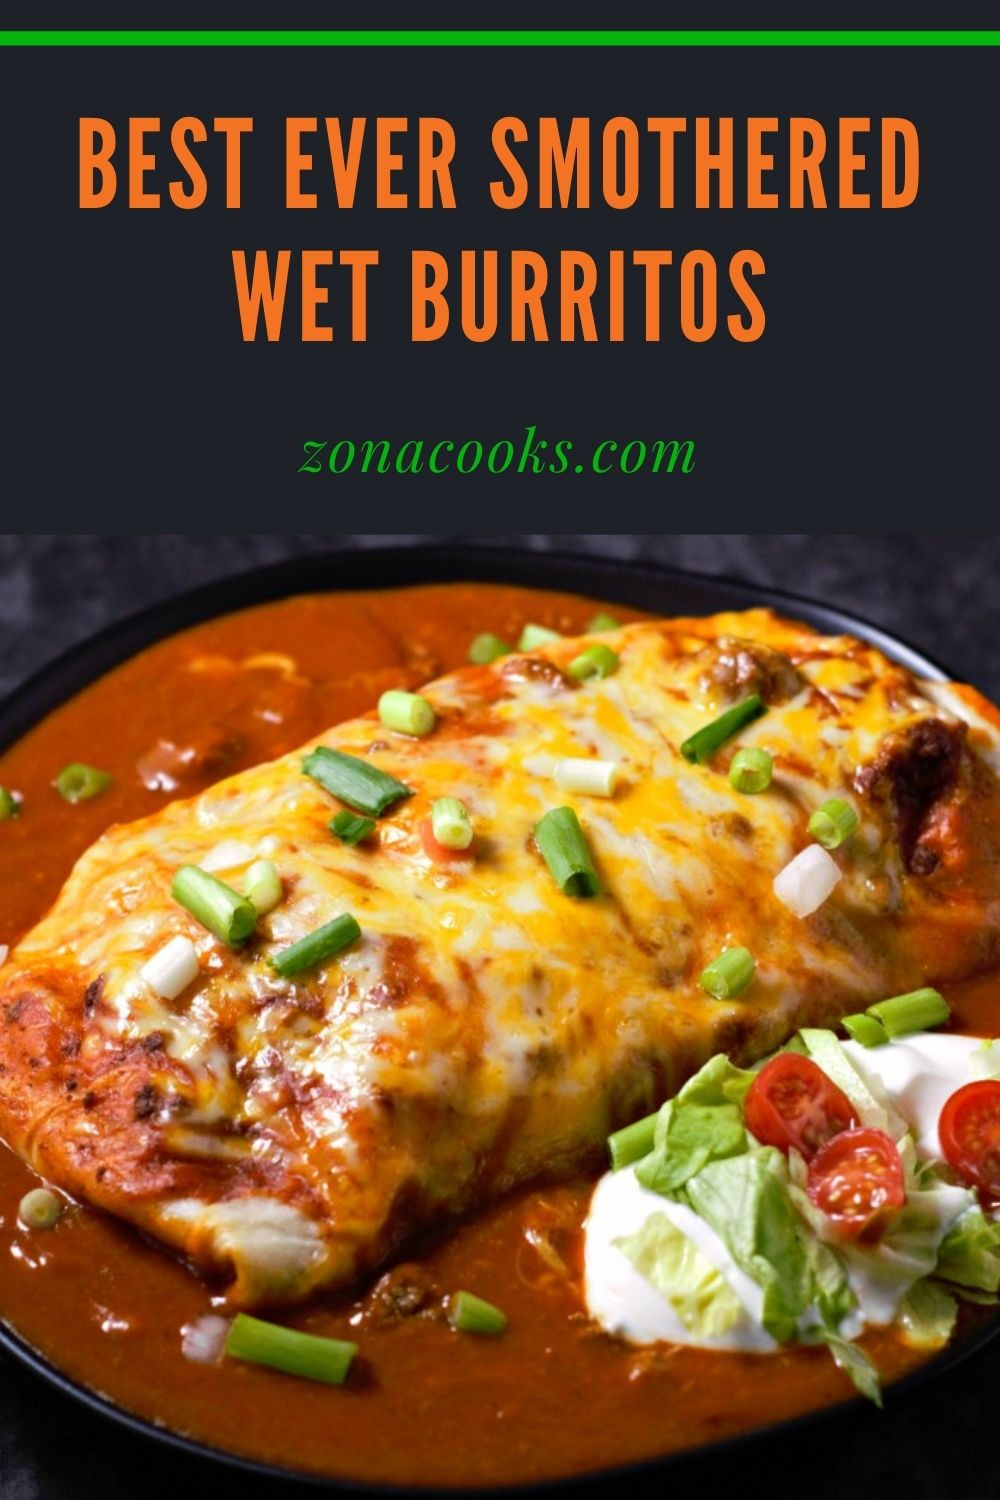 a plate filled with red sauce topped with a tortilla stuffed with filling and covered in melted cheese and text reading best ever smothered wet burritos zonacooks.com